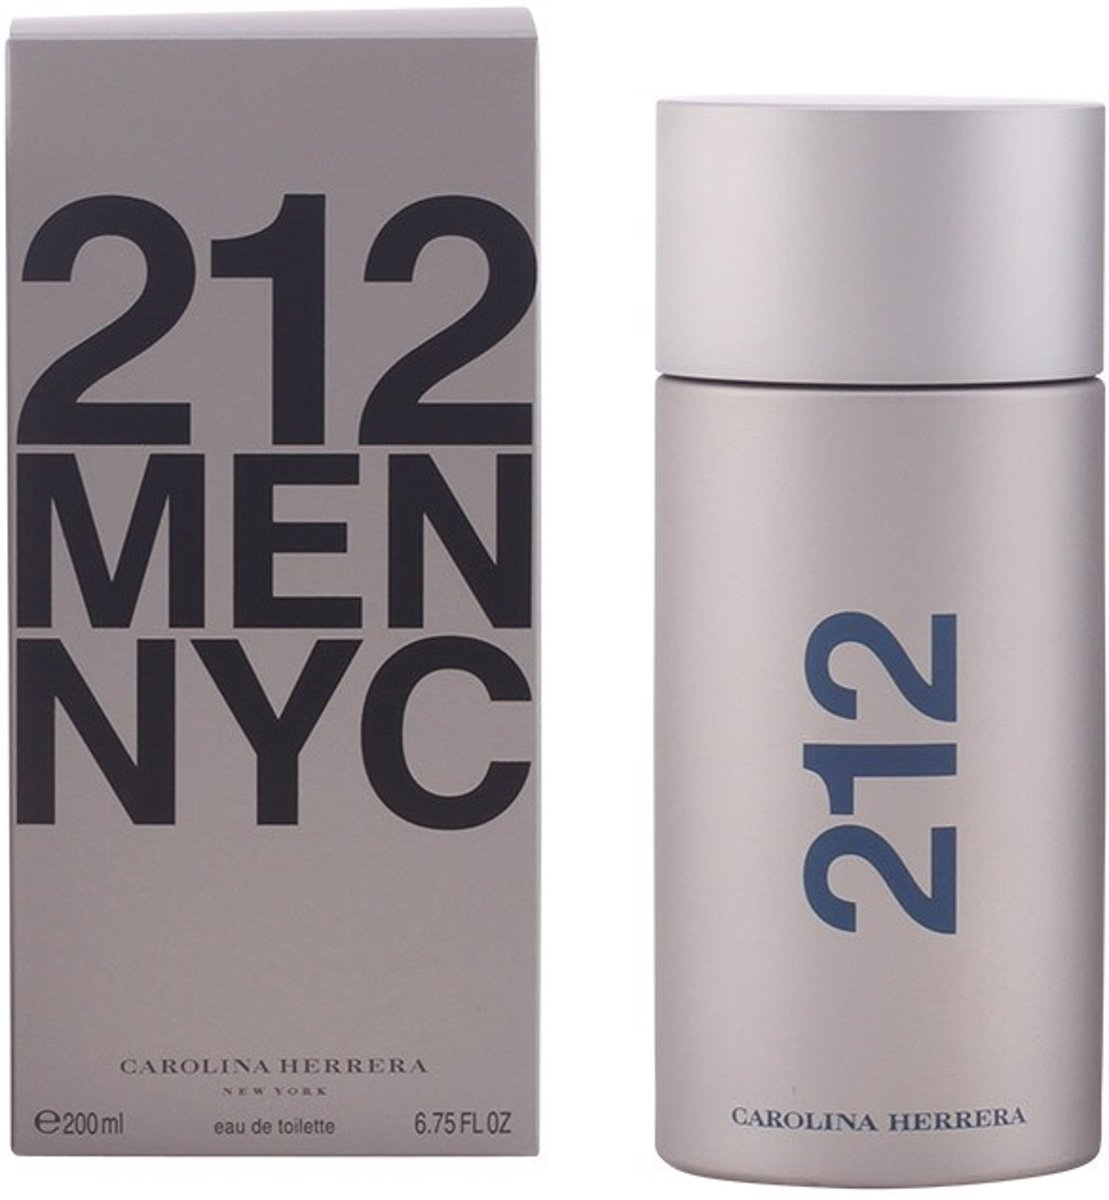 MULTI BUNDEL 2 stuks 212 NYC MEN Eau de Toilette Spray 200 ml